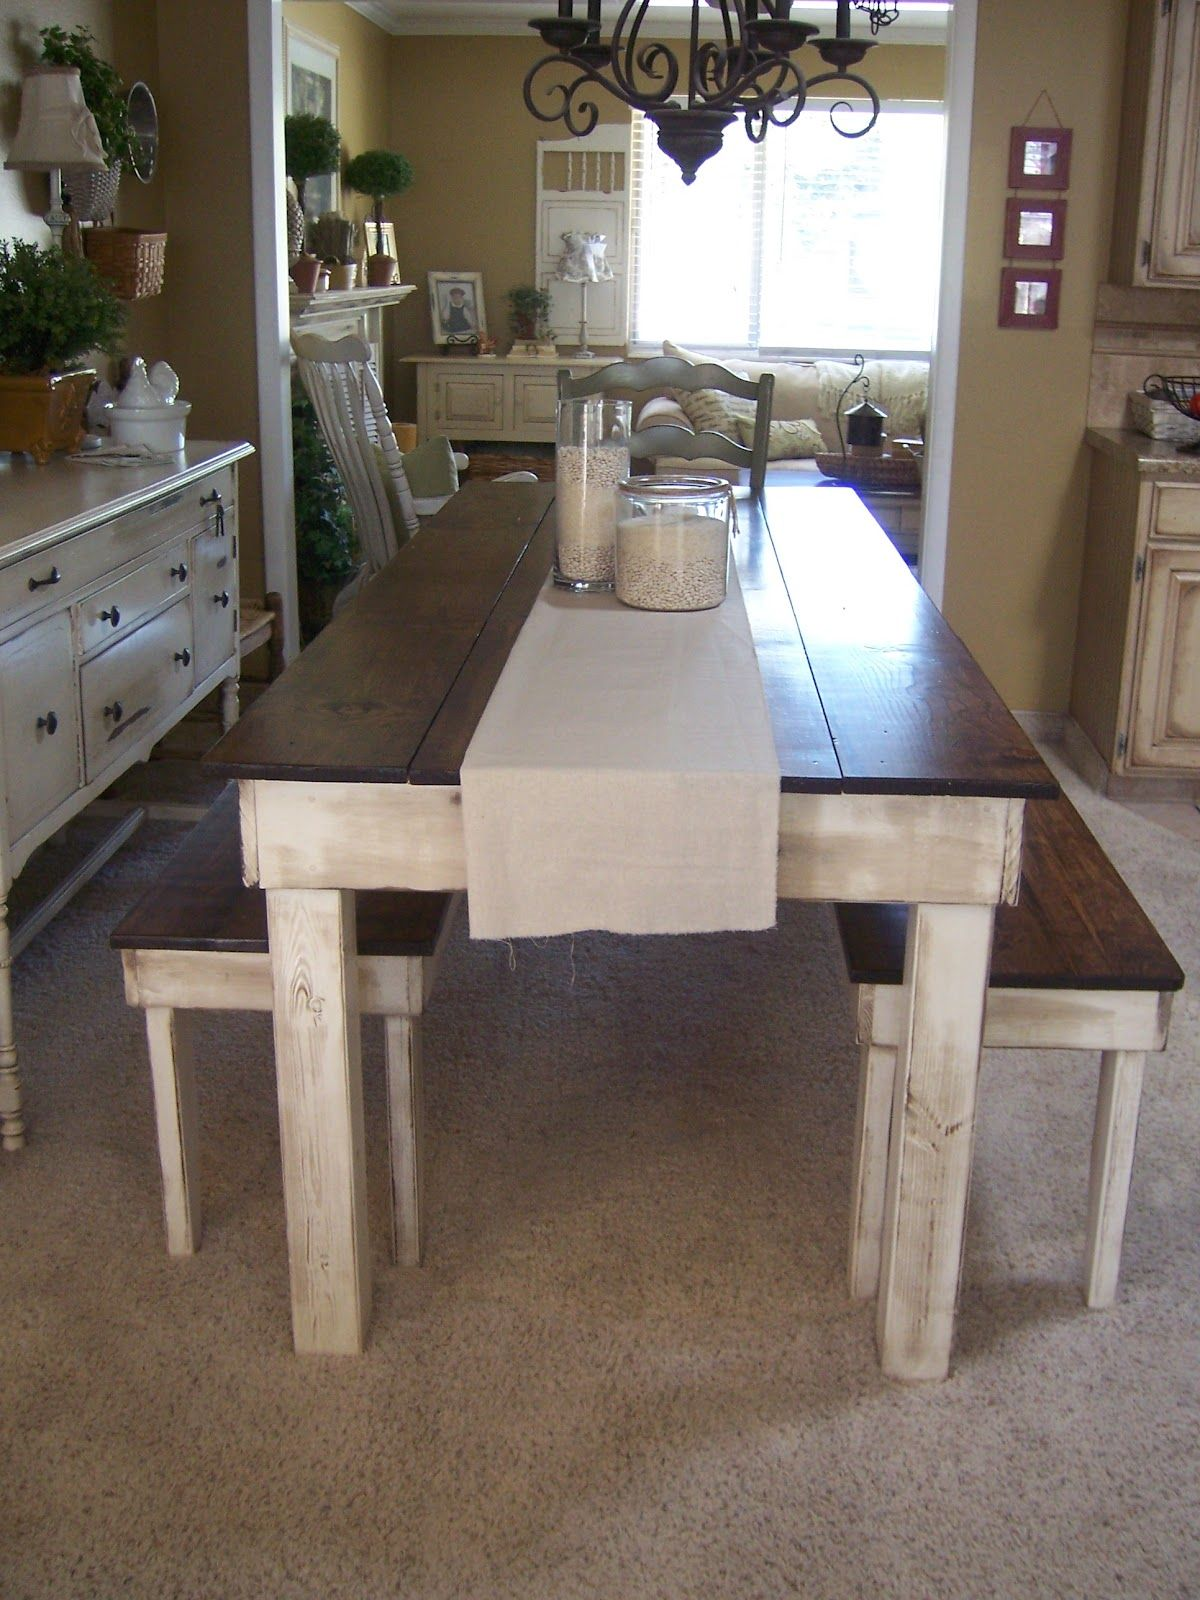 Rustic Homemade Farm Style Dining Room Table With Benches.